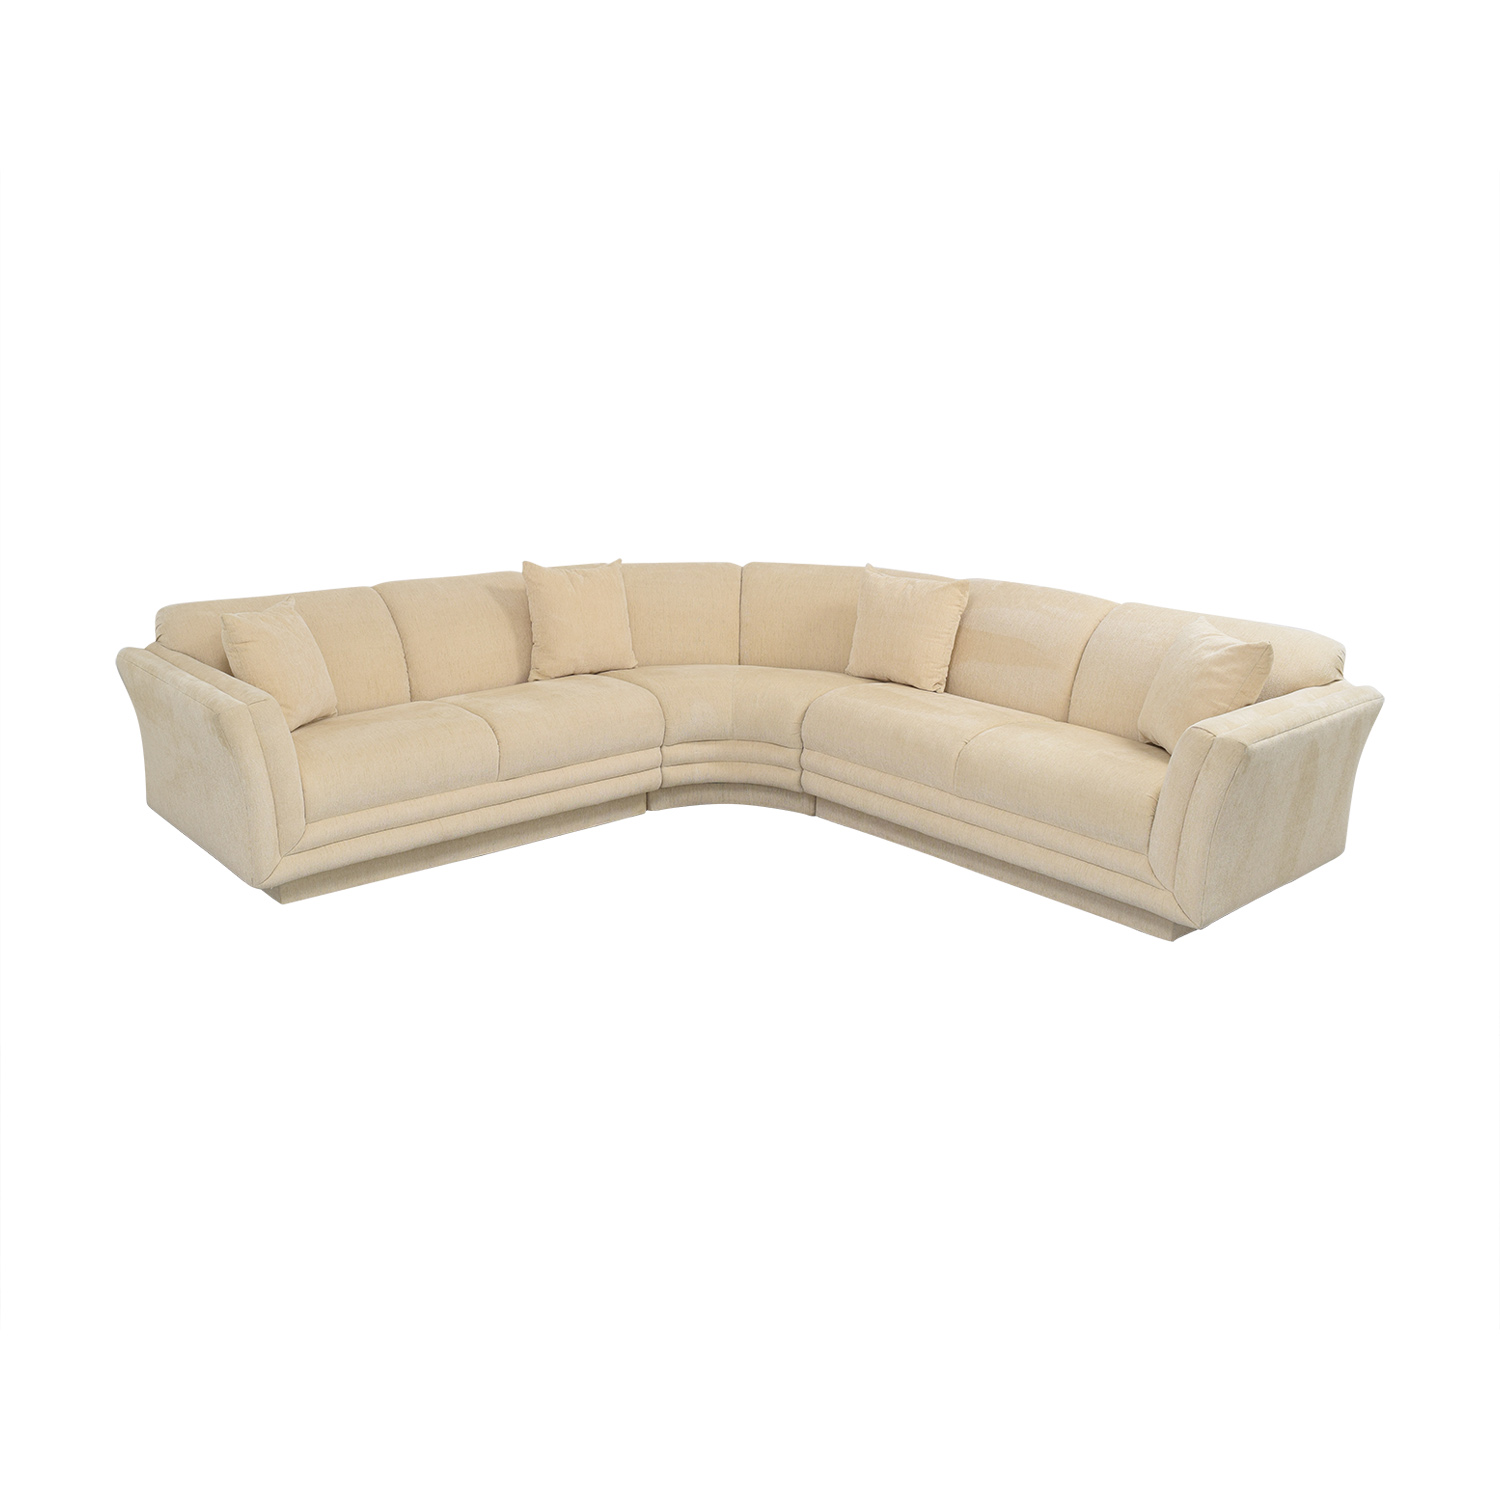 Huffman Koos Curved Sectional Sofa / Sectionals